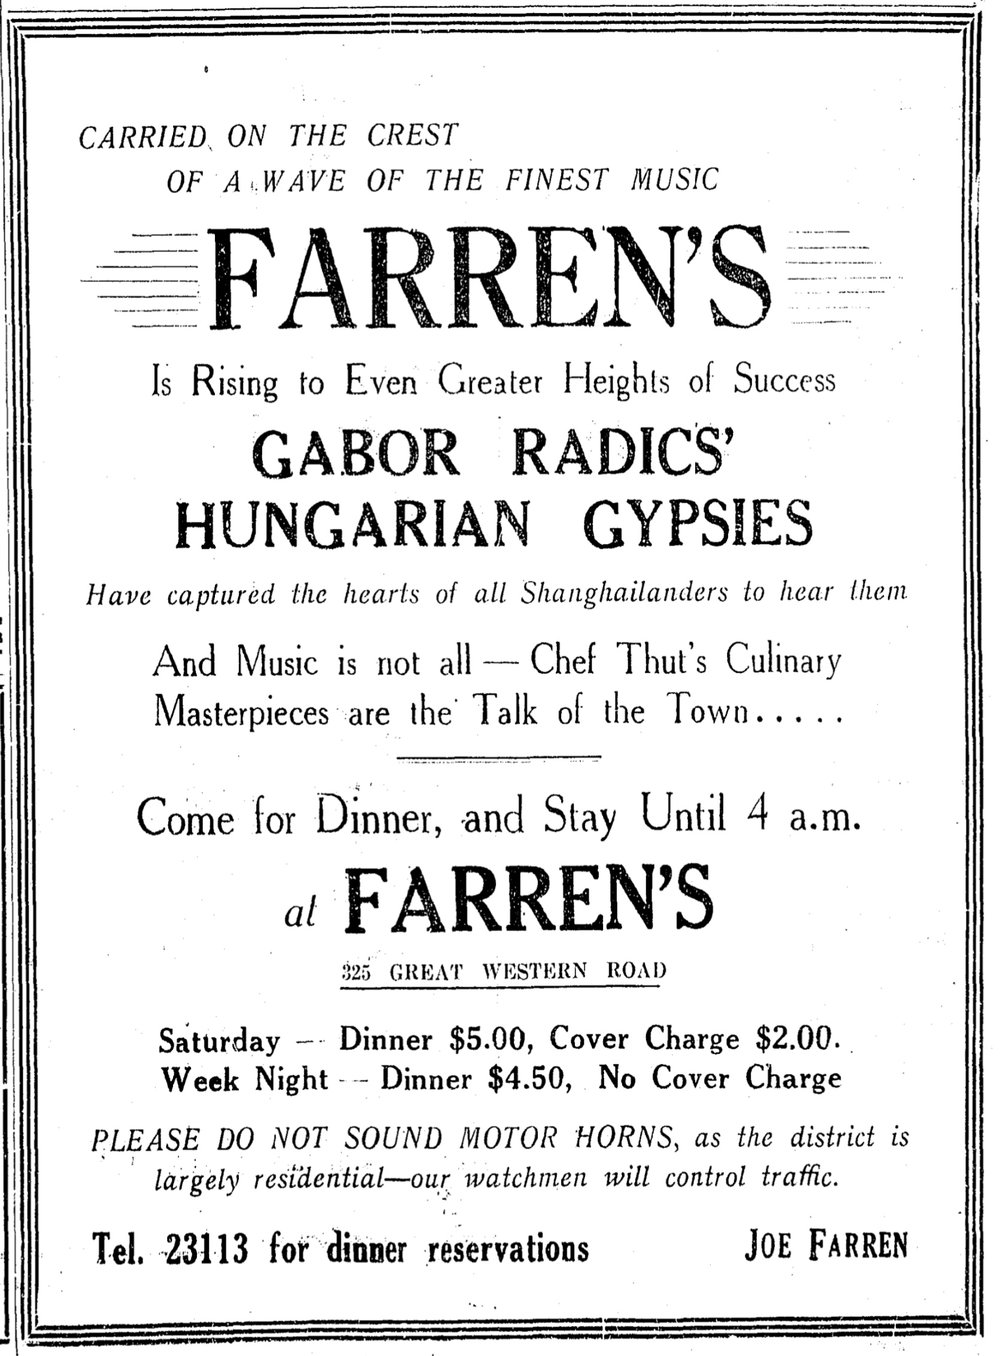 An ad for Farren's that appears in the  China Press  27 June 1937